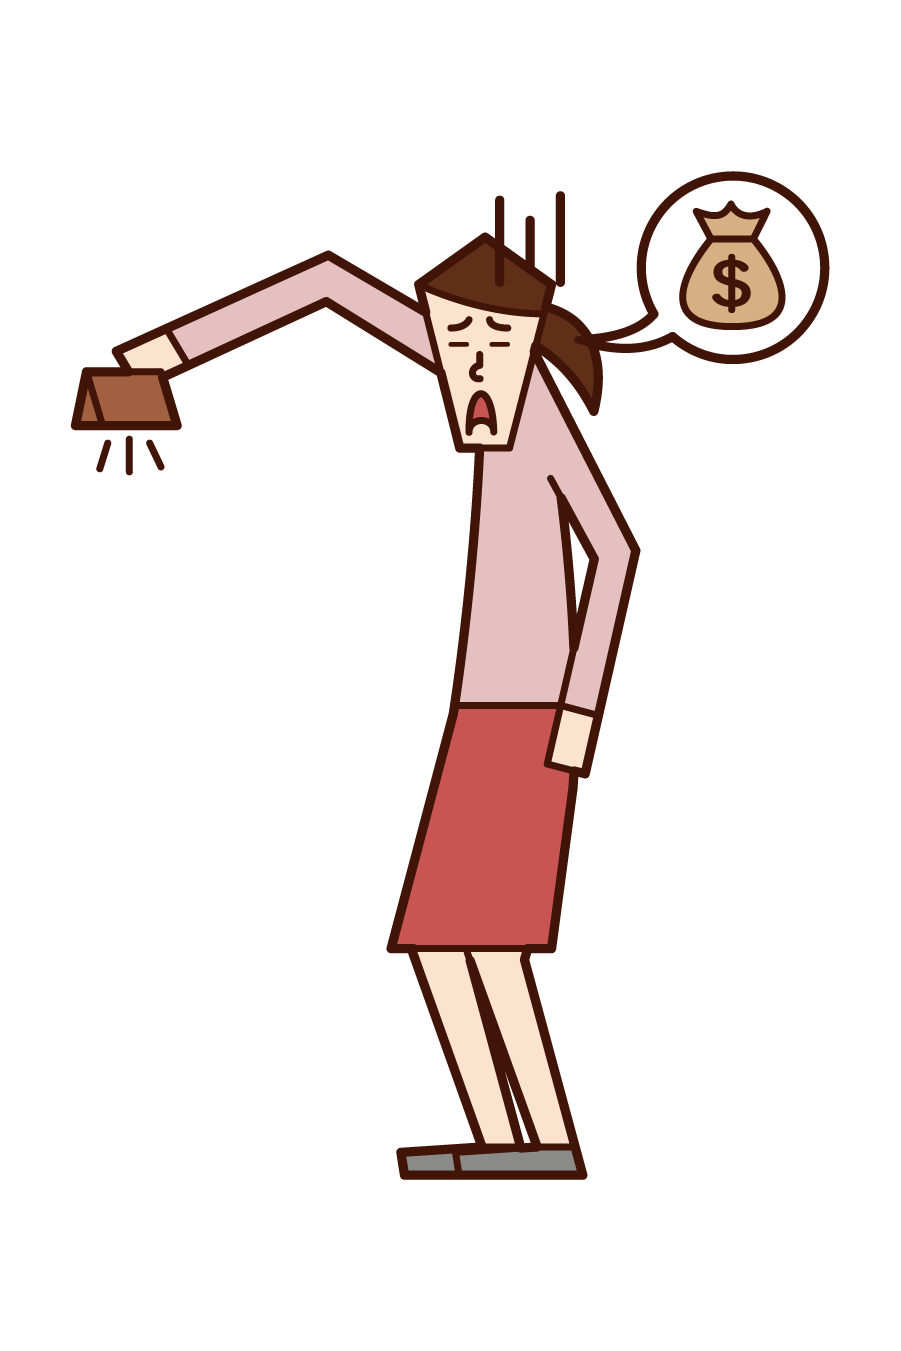 Illustration of a man (woman) who is out of money